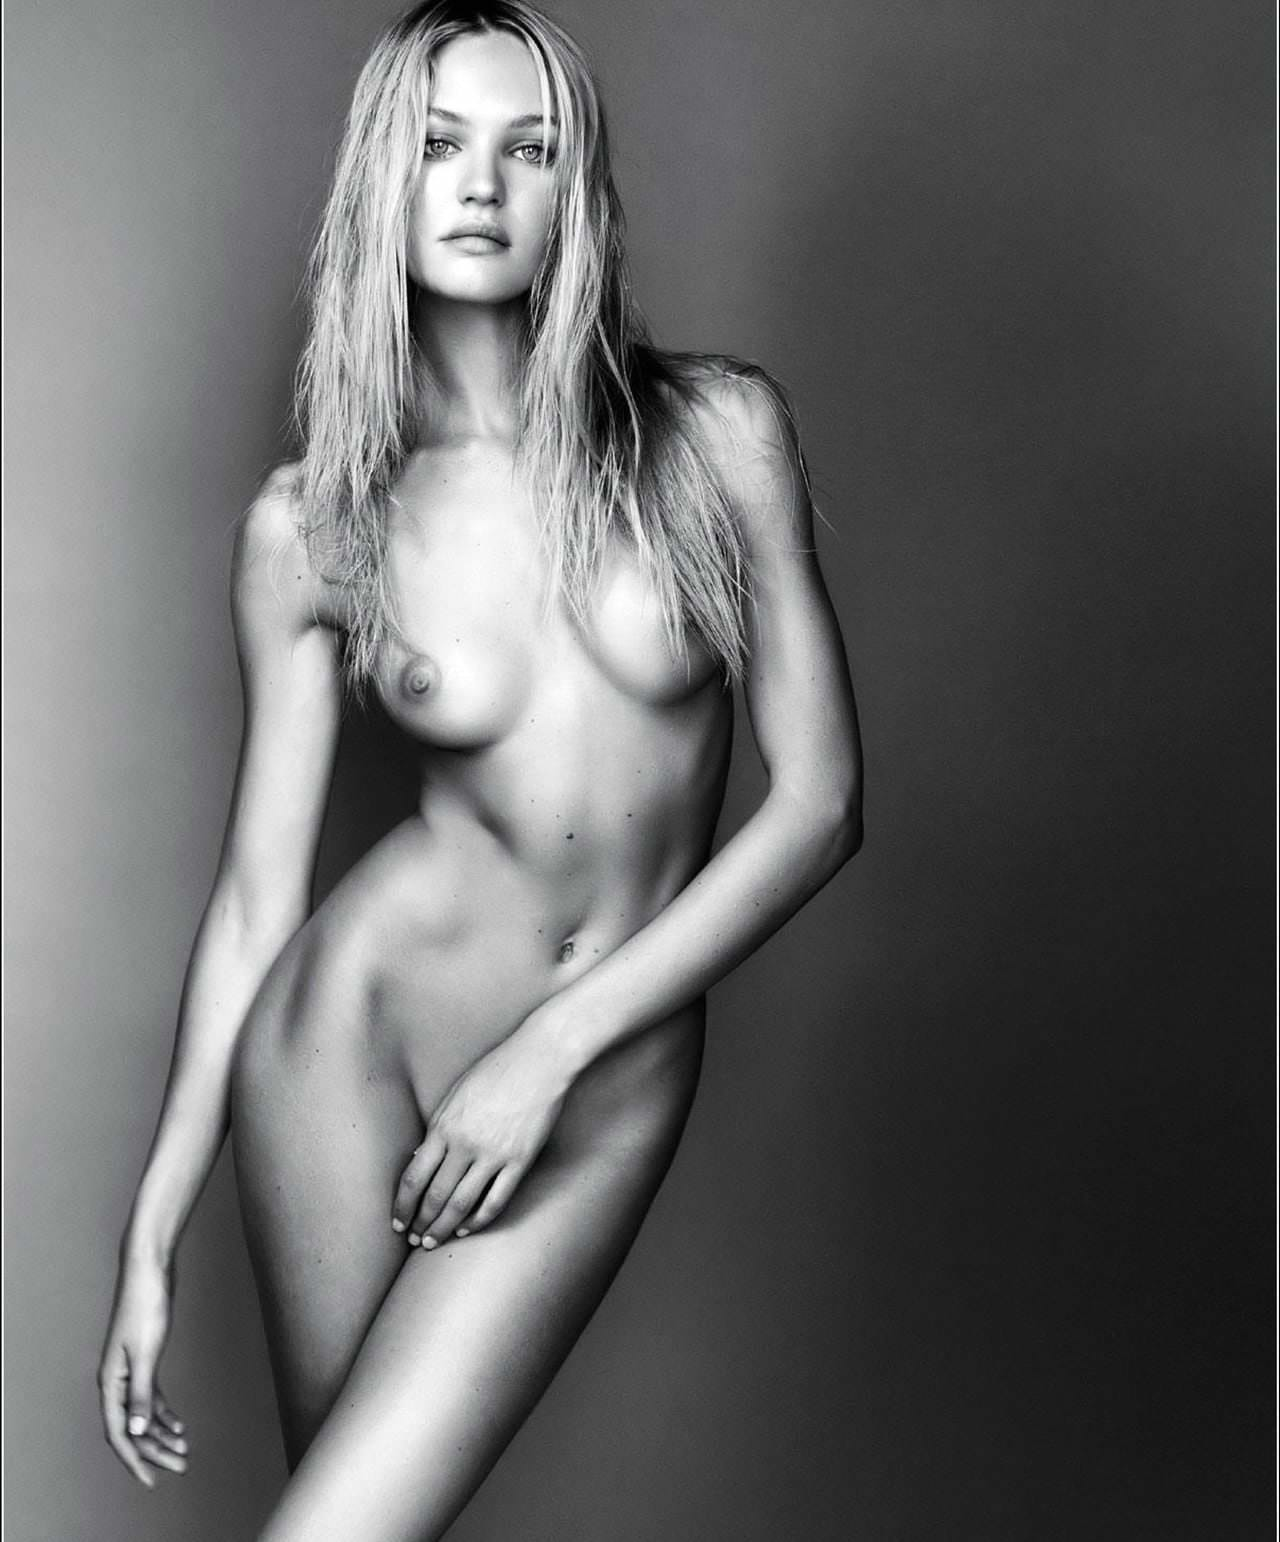 Candice Swanepoel Nudes And Porn! 0038